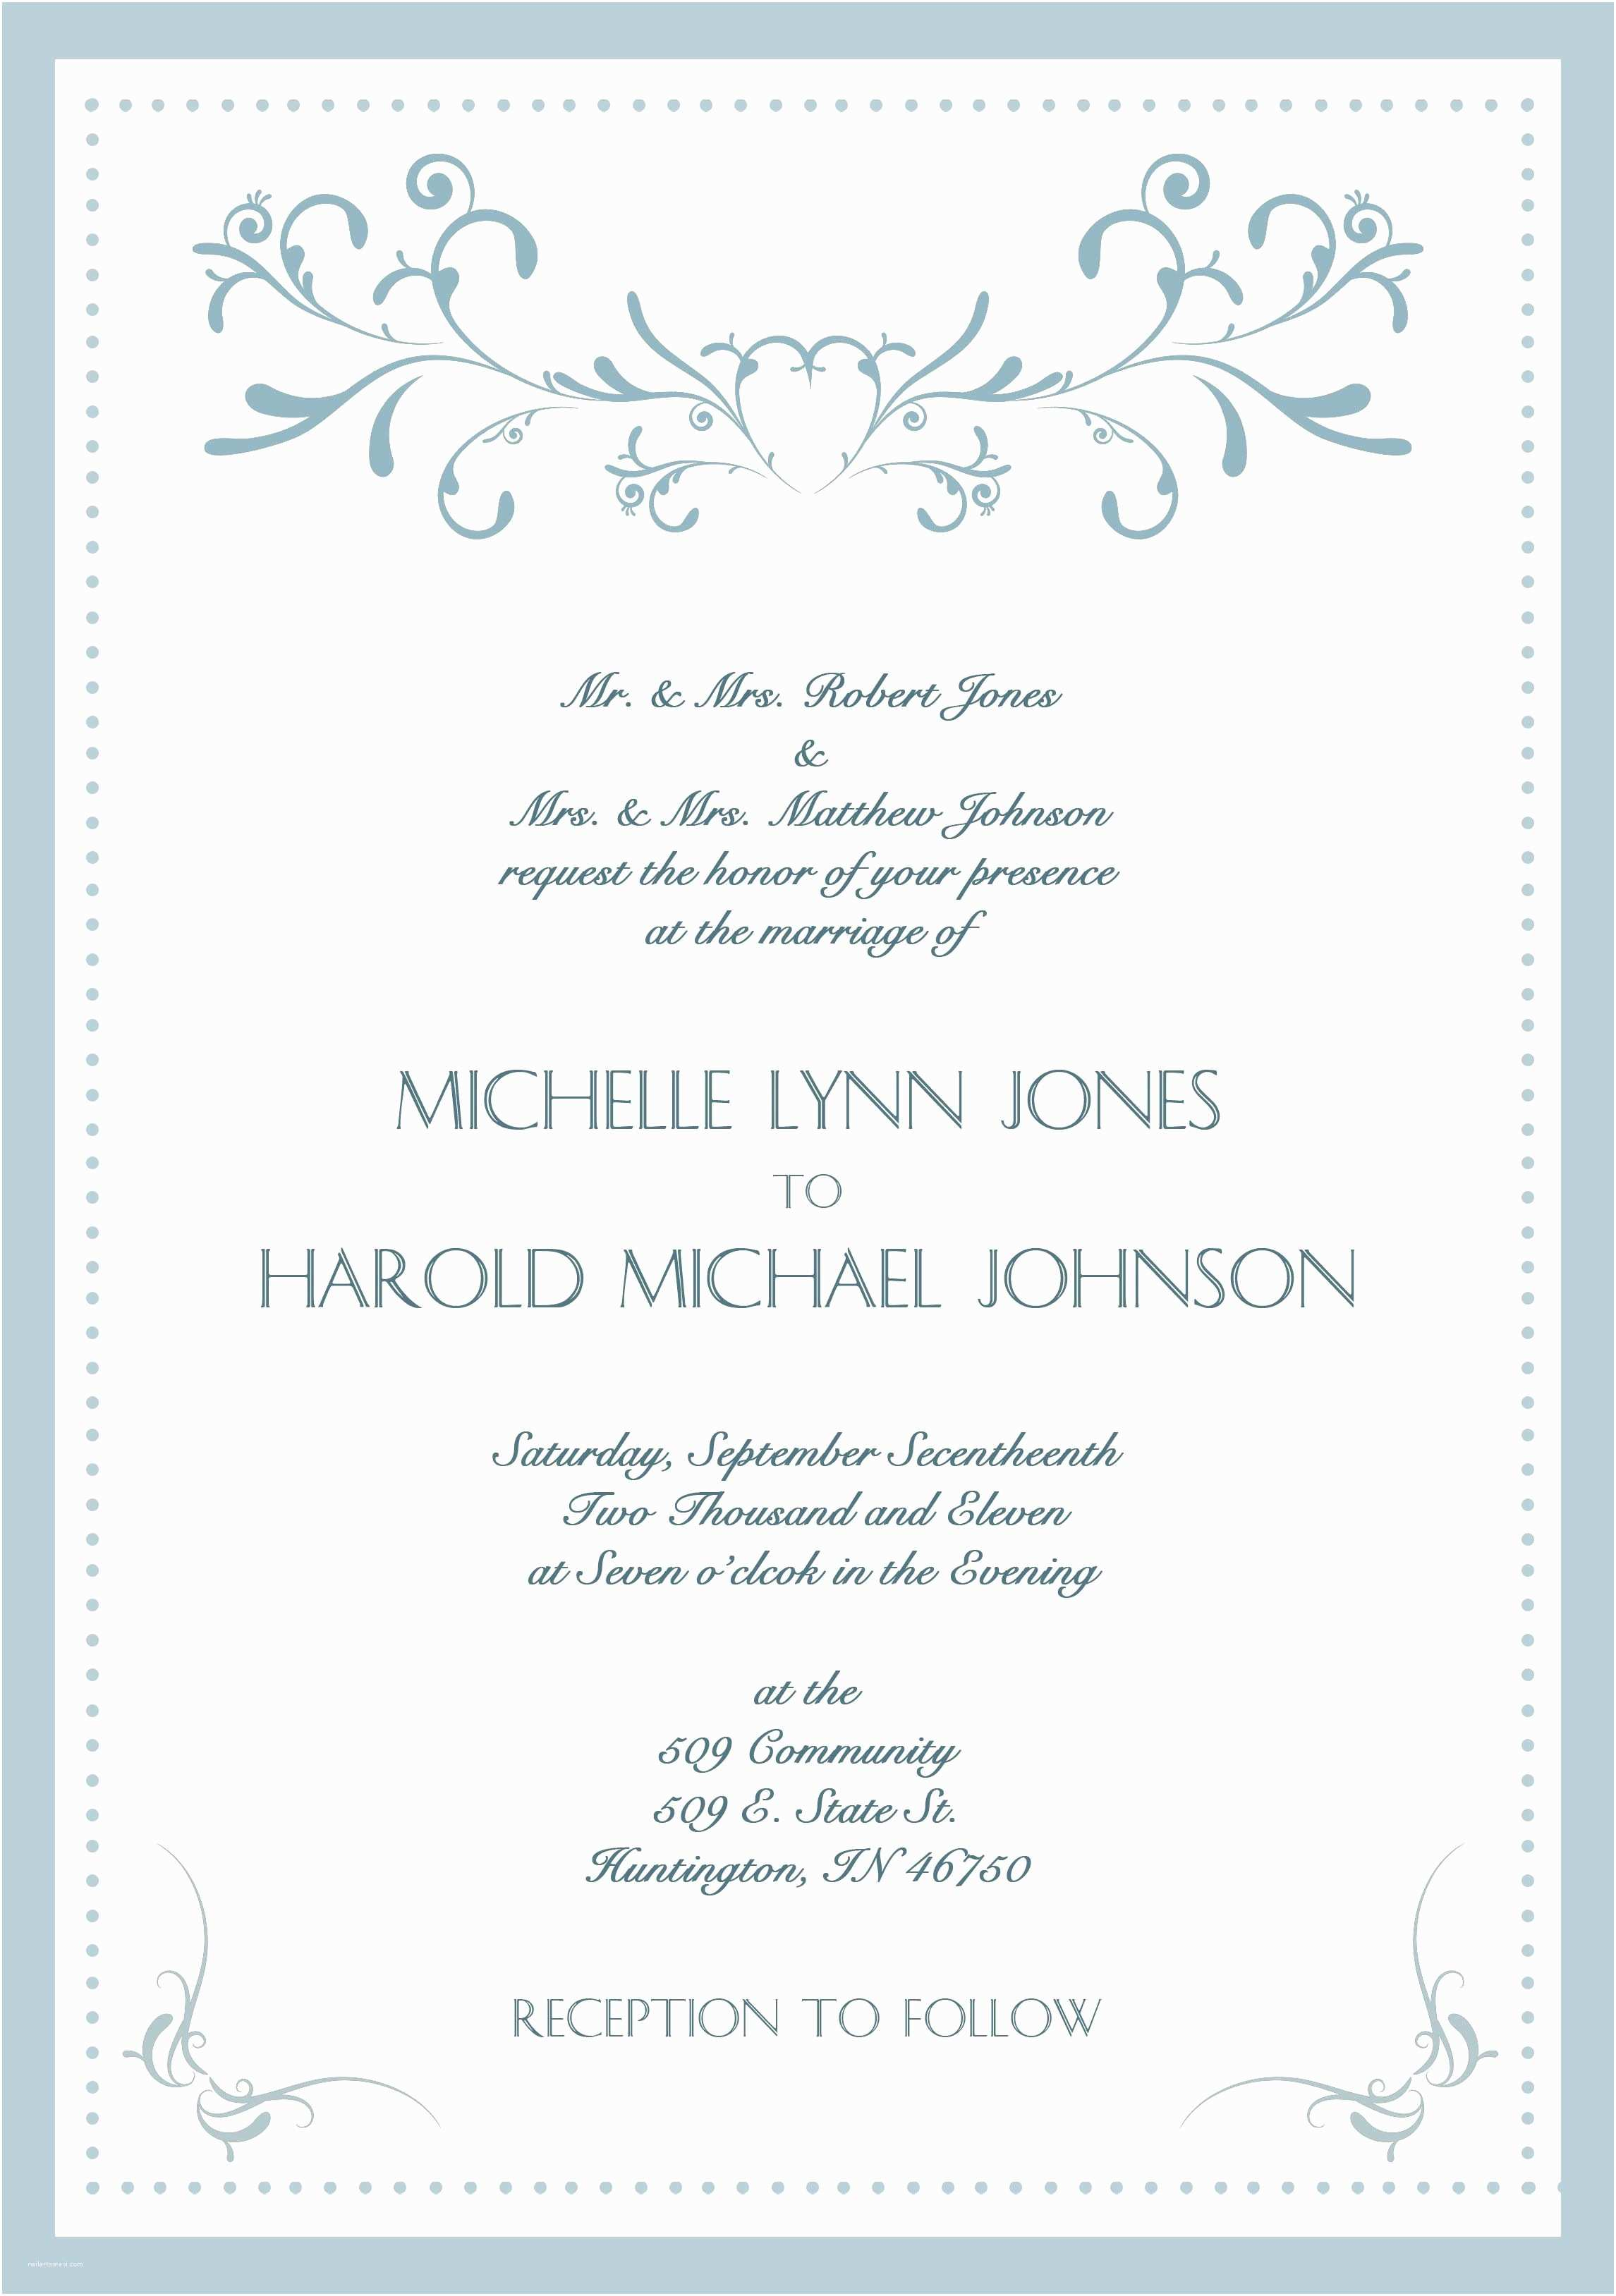 Wedding Invitation Cards Samples Sample Wedding Invitation Cards In English